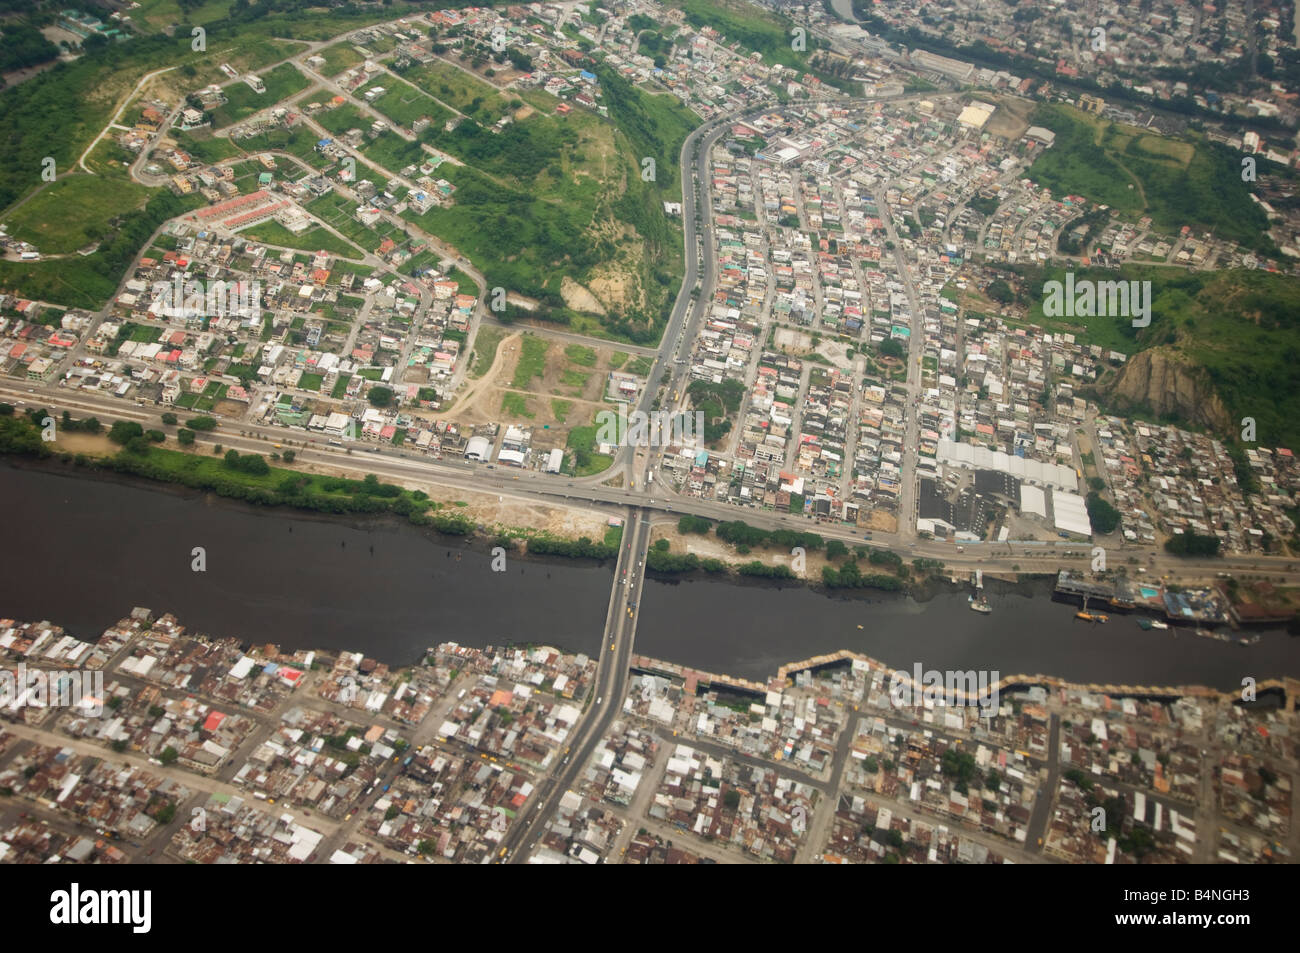 fly flying over overfly overflying Quaiaquil Ecuador city Equador Ecuador Overview cityscape urban birds eye view - Stock Image